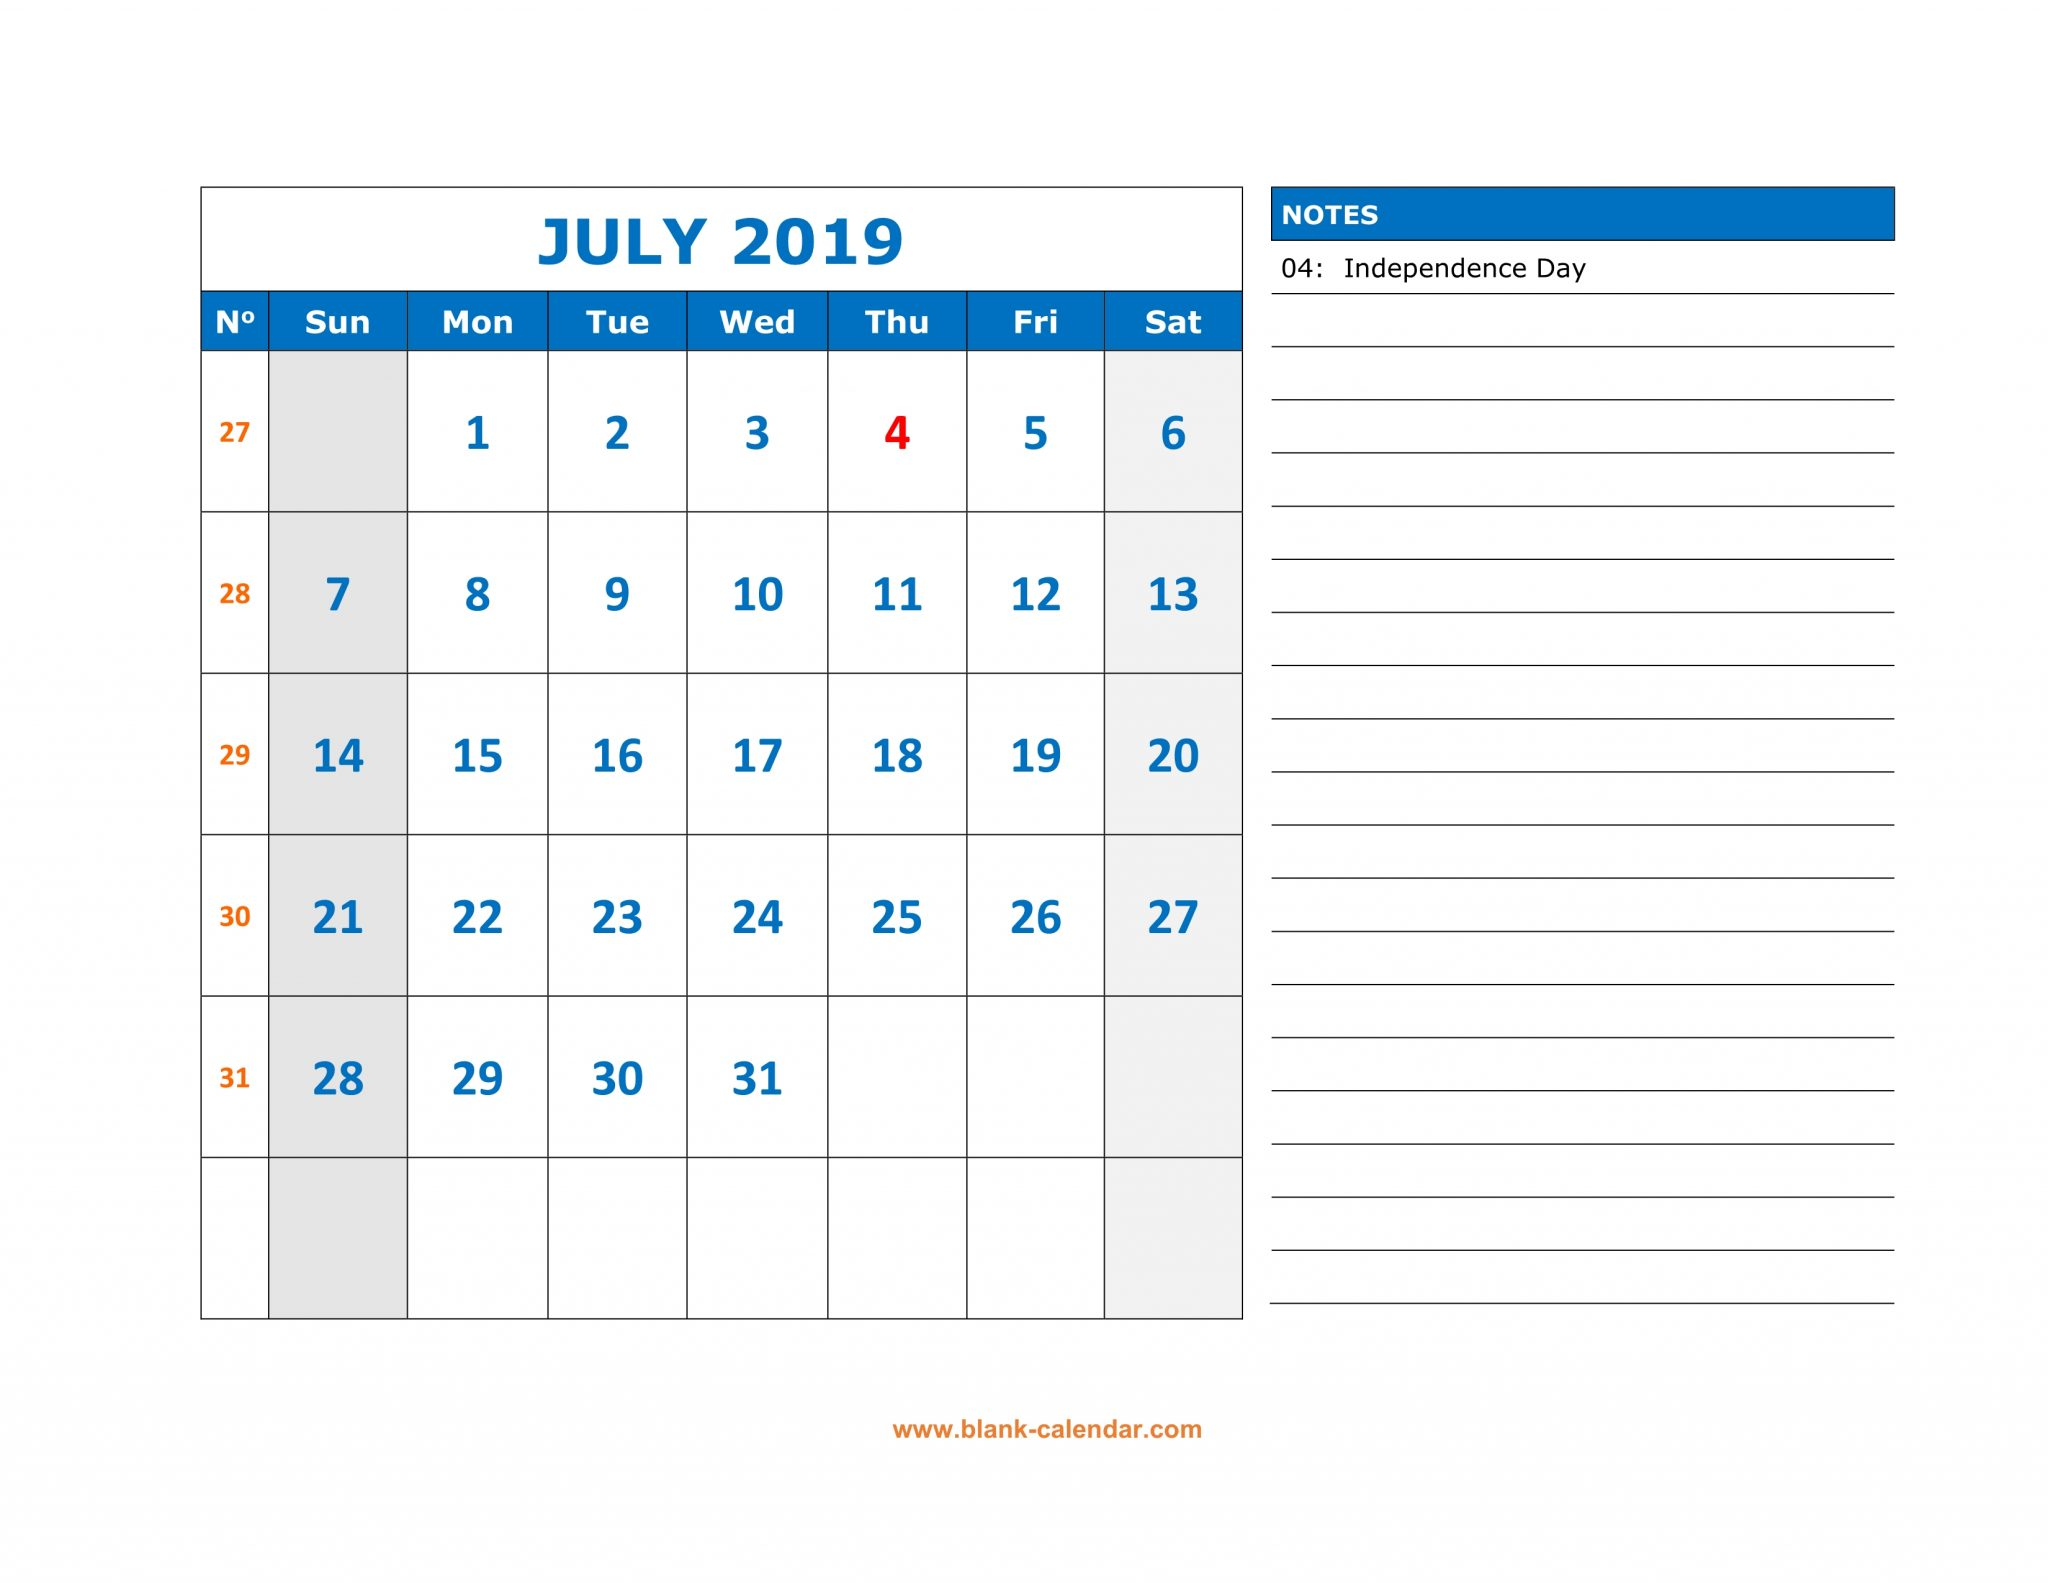 July 2019 Calendar With Notes